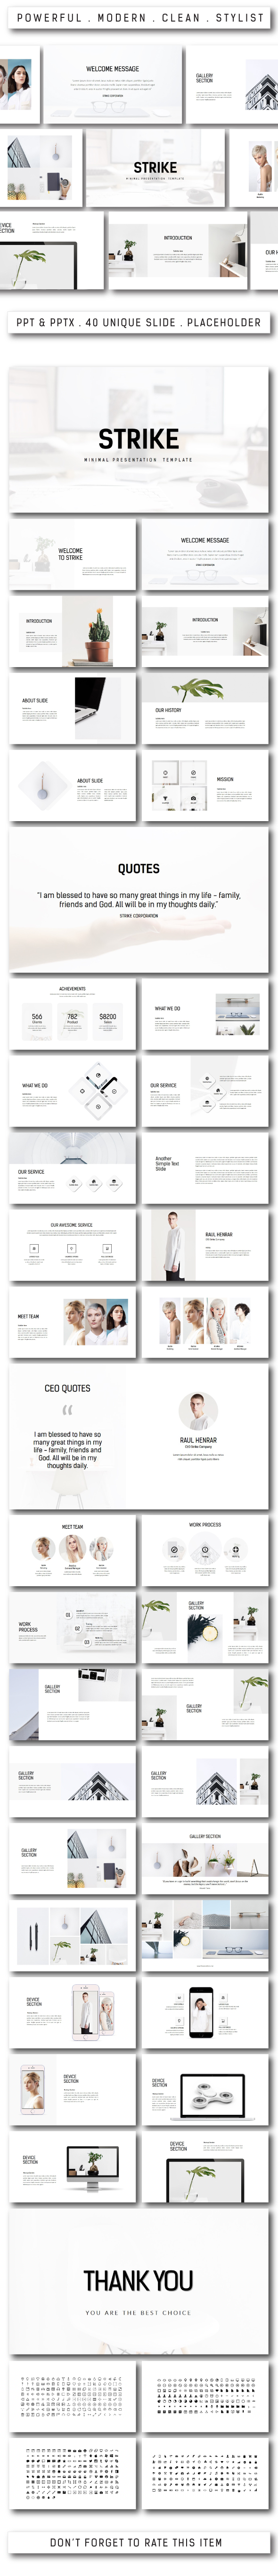 GraphicRiver Strike Minimal Powerpoint Template 20395532